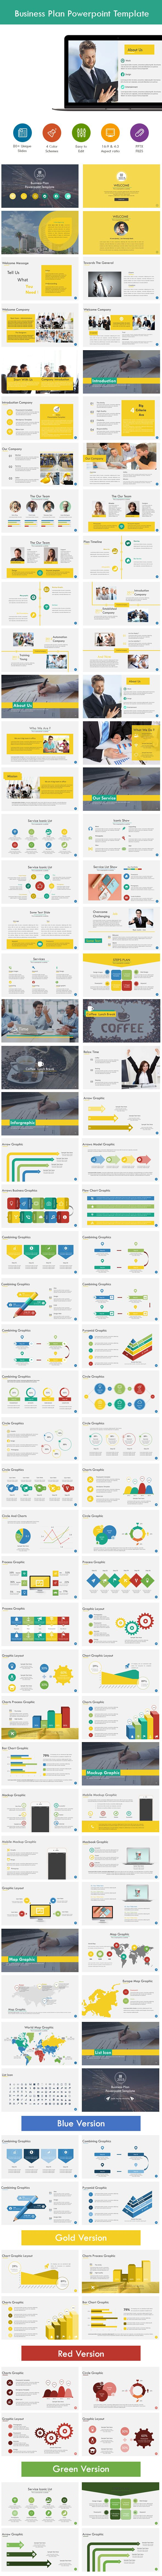 Business Plan Proposal Powerpoint Template   YouTube GraphicRiver Golf Clubs PowerPoint Template with Sucess and Failure